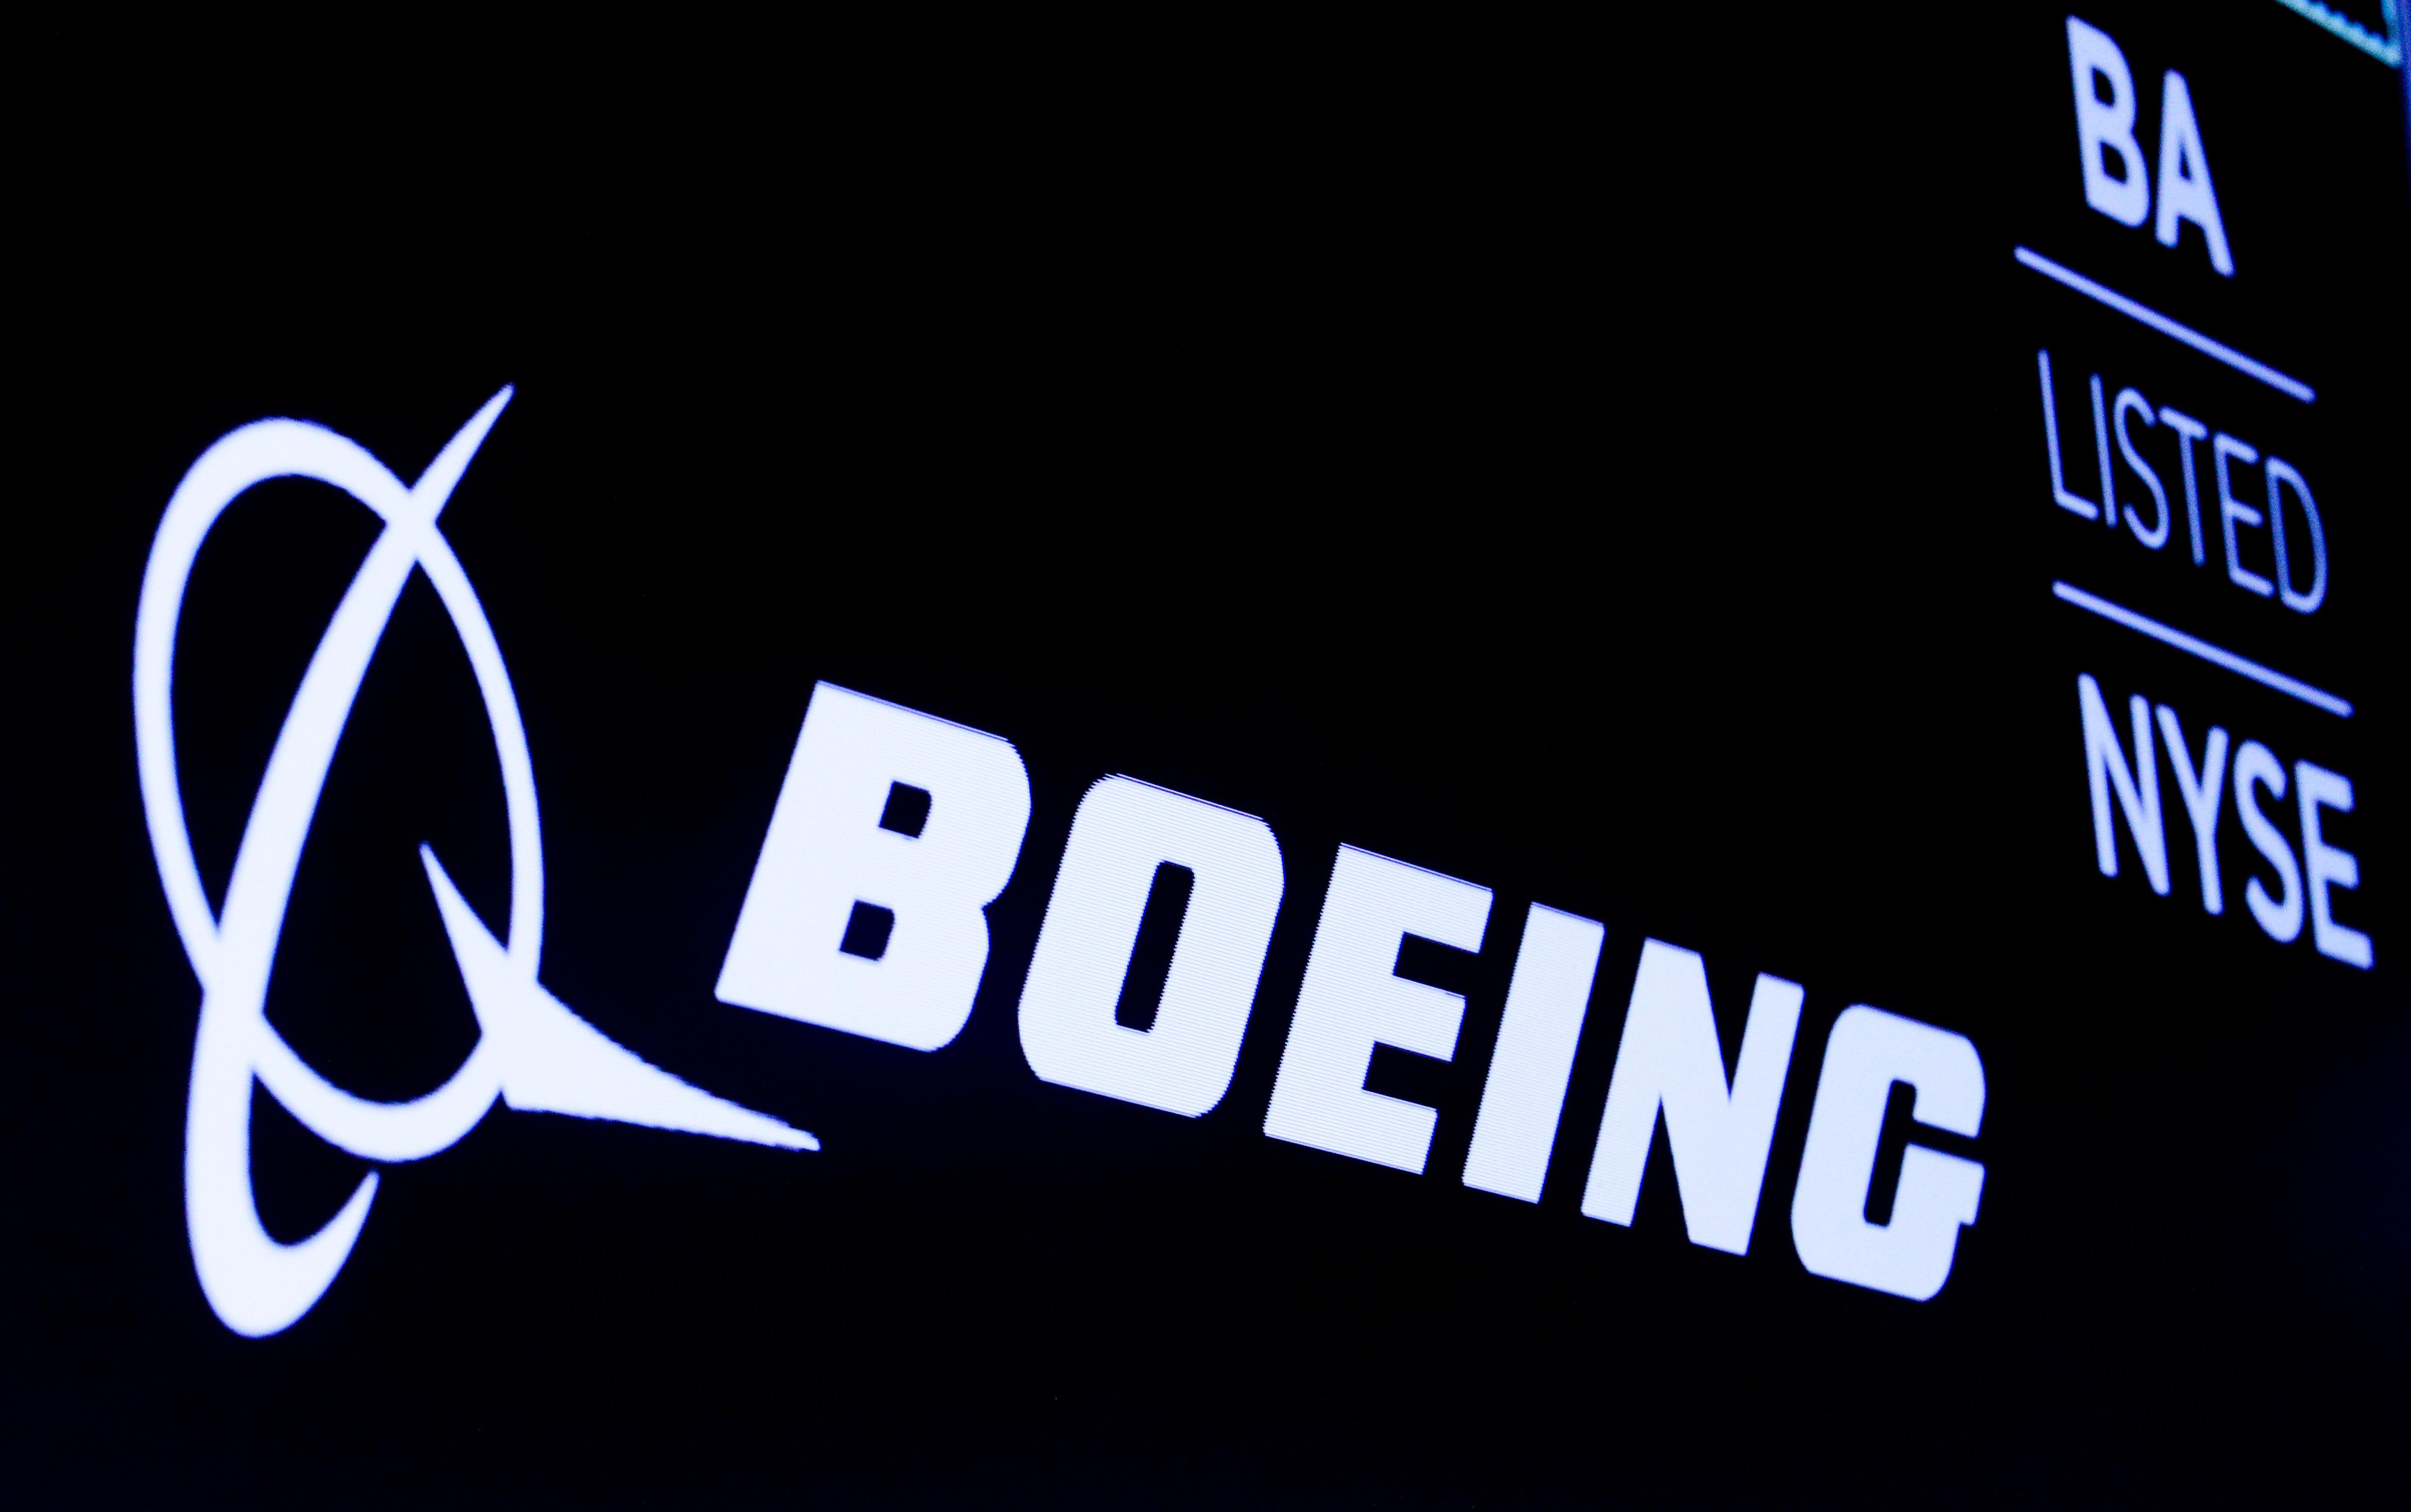 FIL EPHOTO: The Boeing logo is displayed on a screen, at the New York Stock Exchange (NYSE) in New York, U.S., August 7, 2019. Brendan McDermid